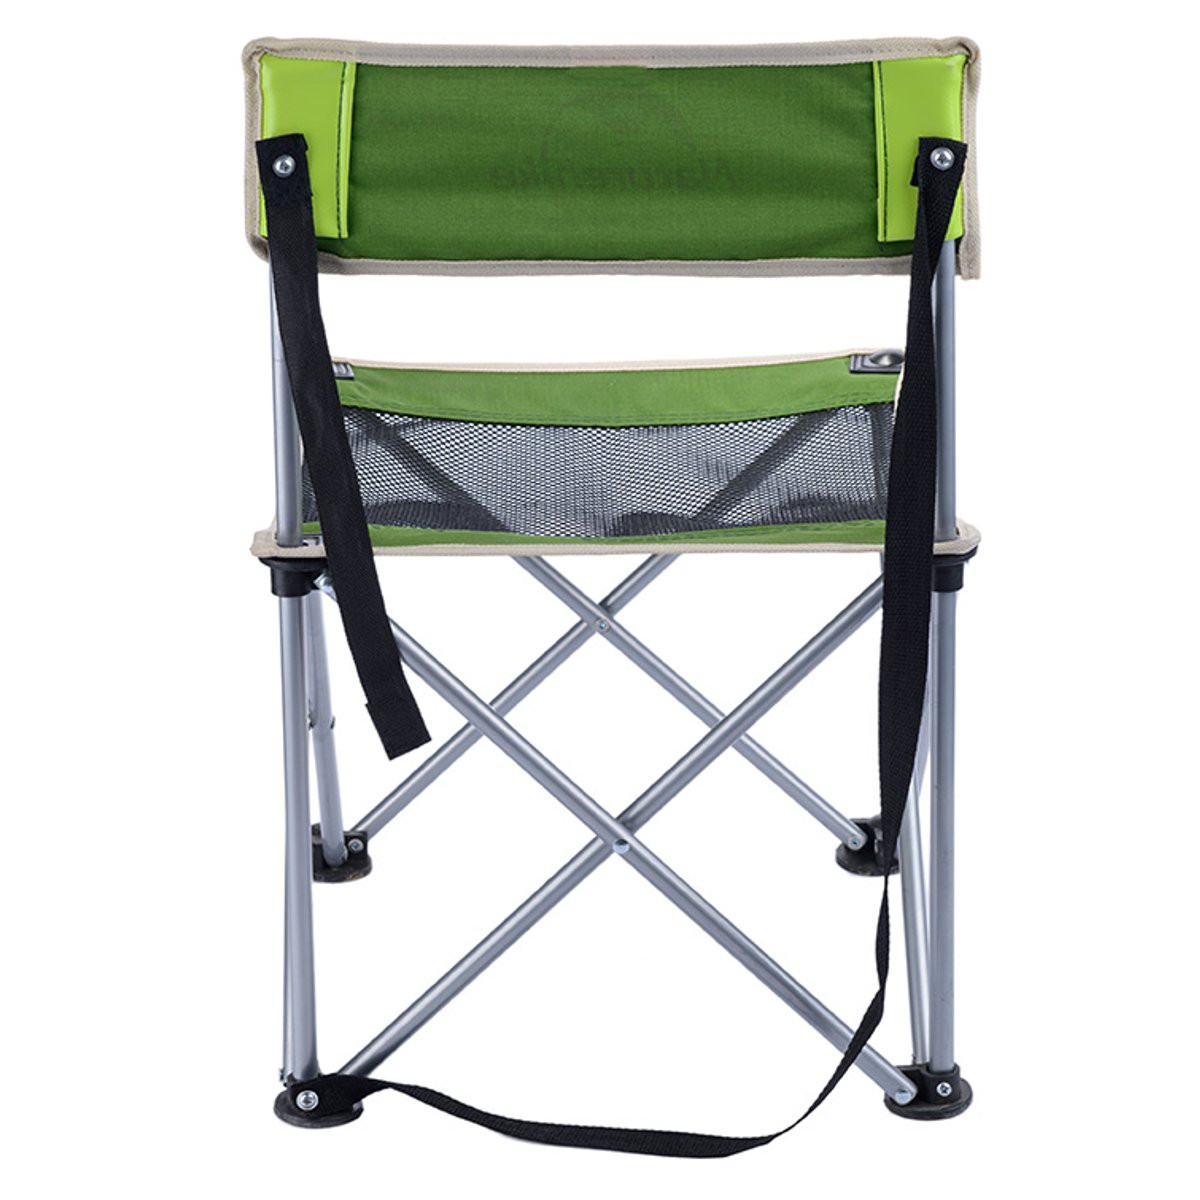 Outdoor Camping Portable Folding Chair Lightweight Fishing